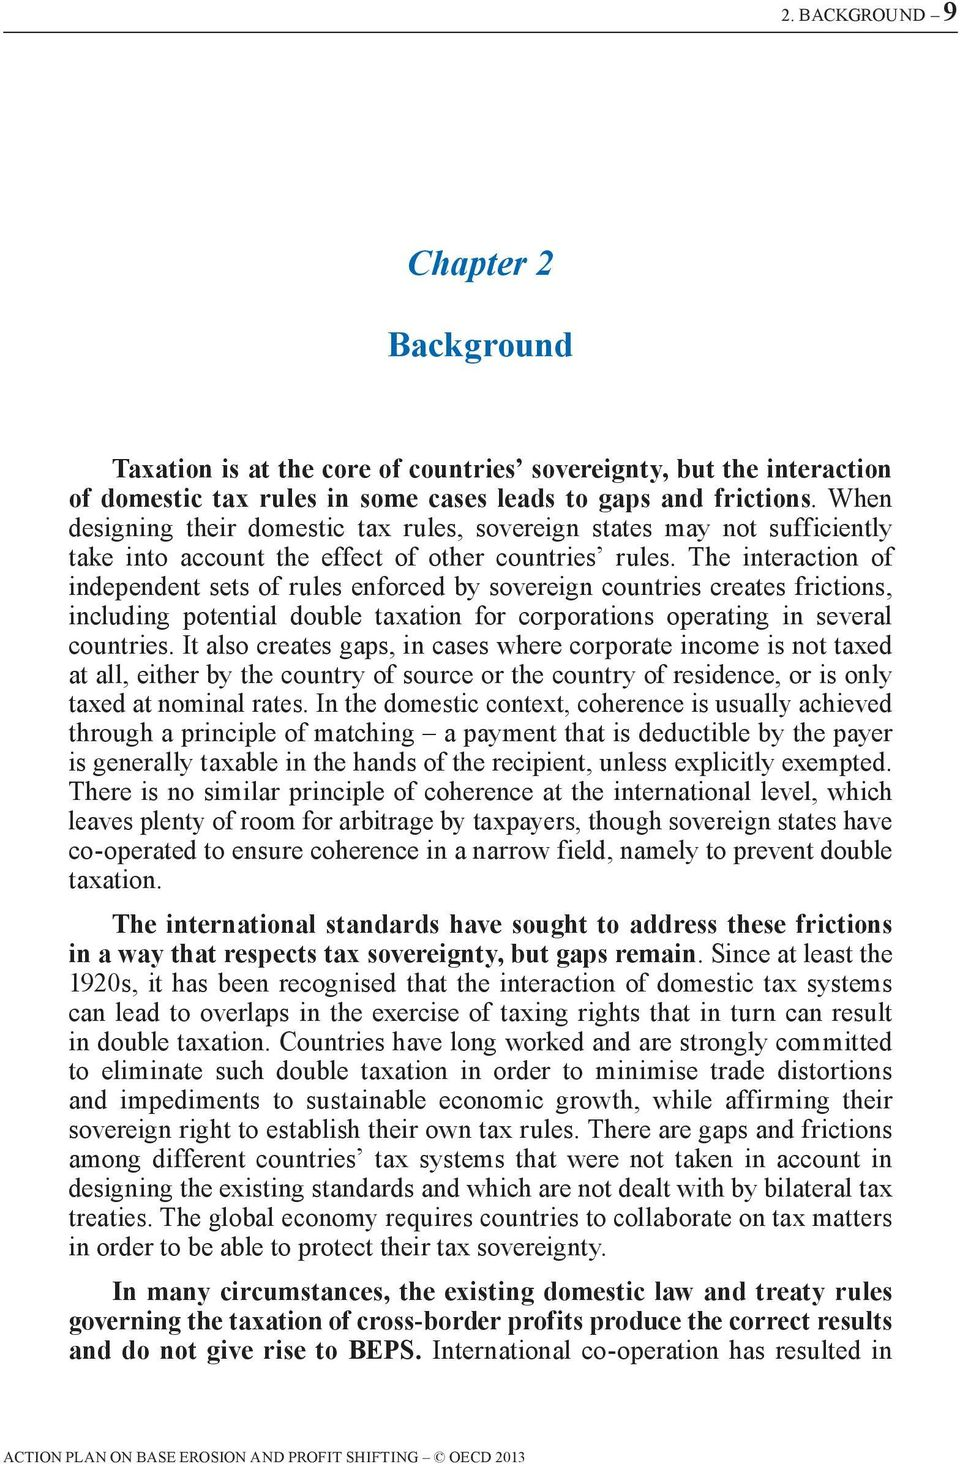 The interaction of independent sets of rules enforced by sovereign countries creates frictions, including potential double taxation for corporations operating in several countries.